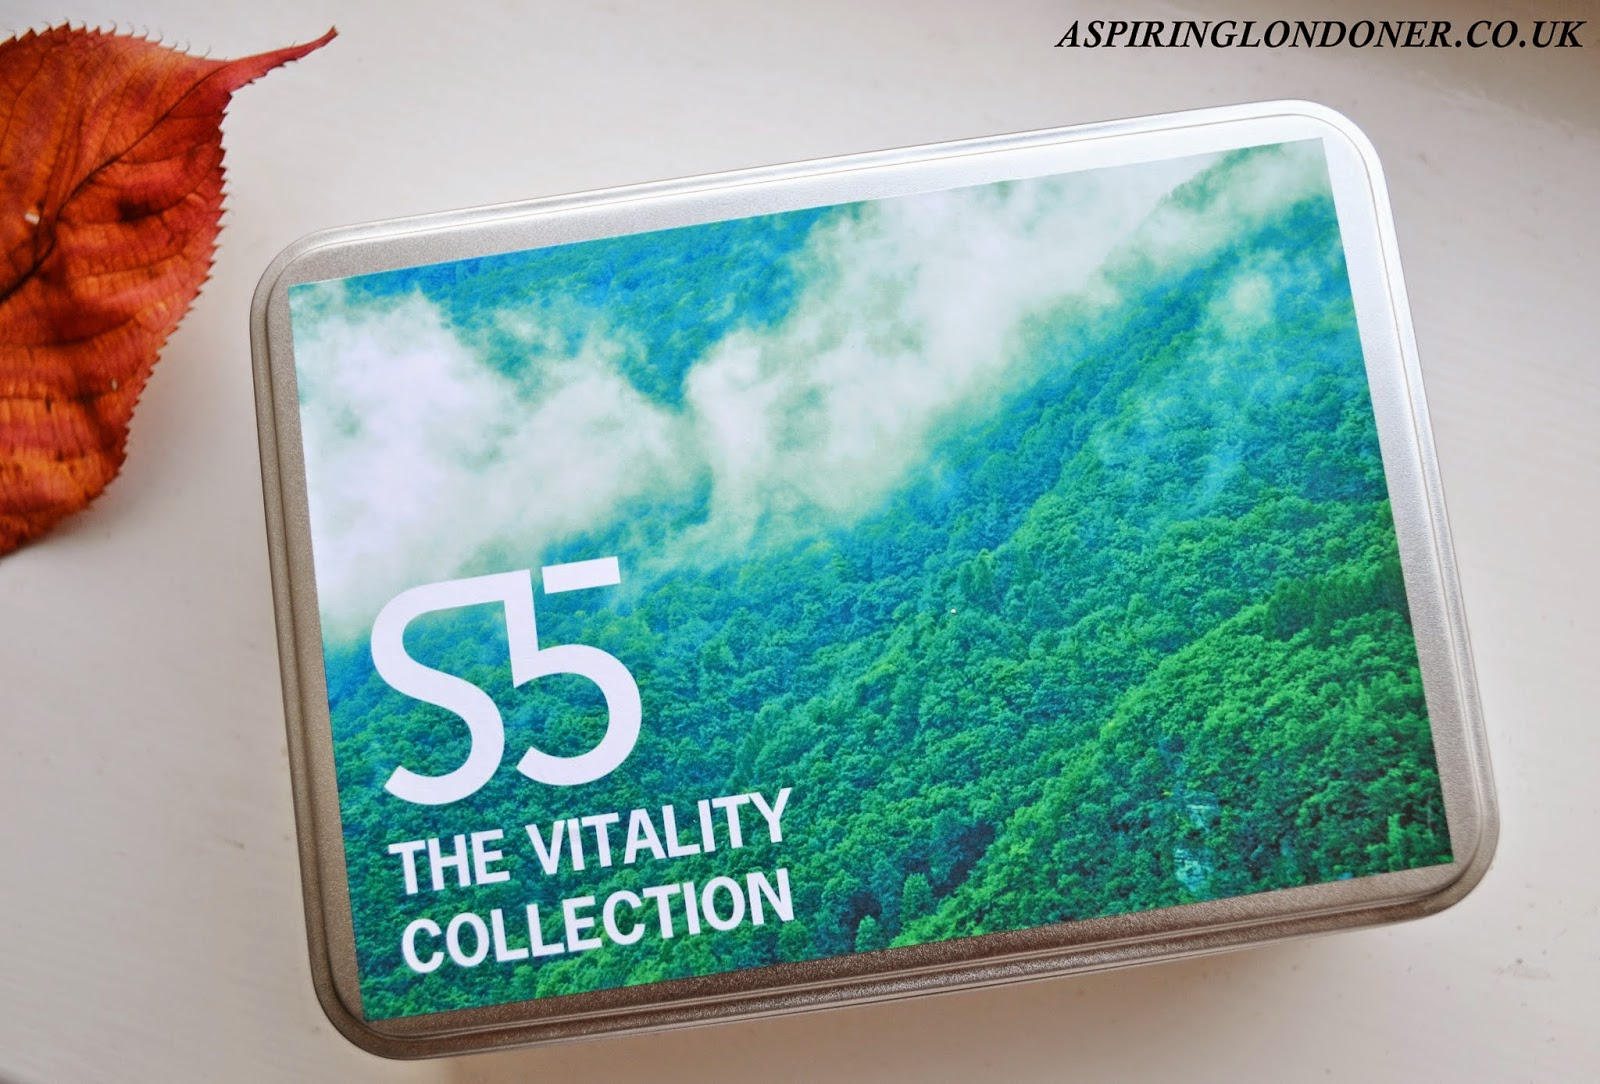 S5 The Vitality Collection Review - Aspiring Londoner